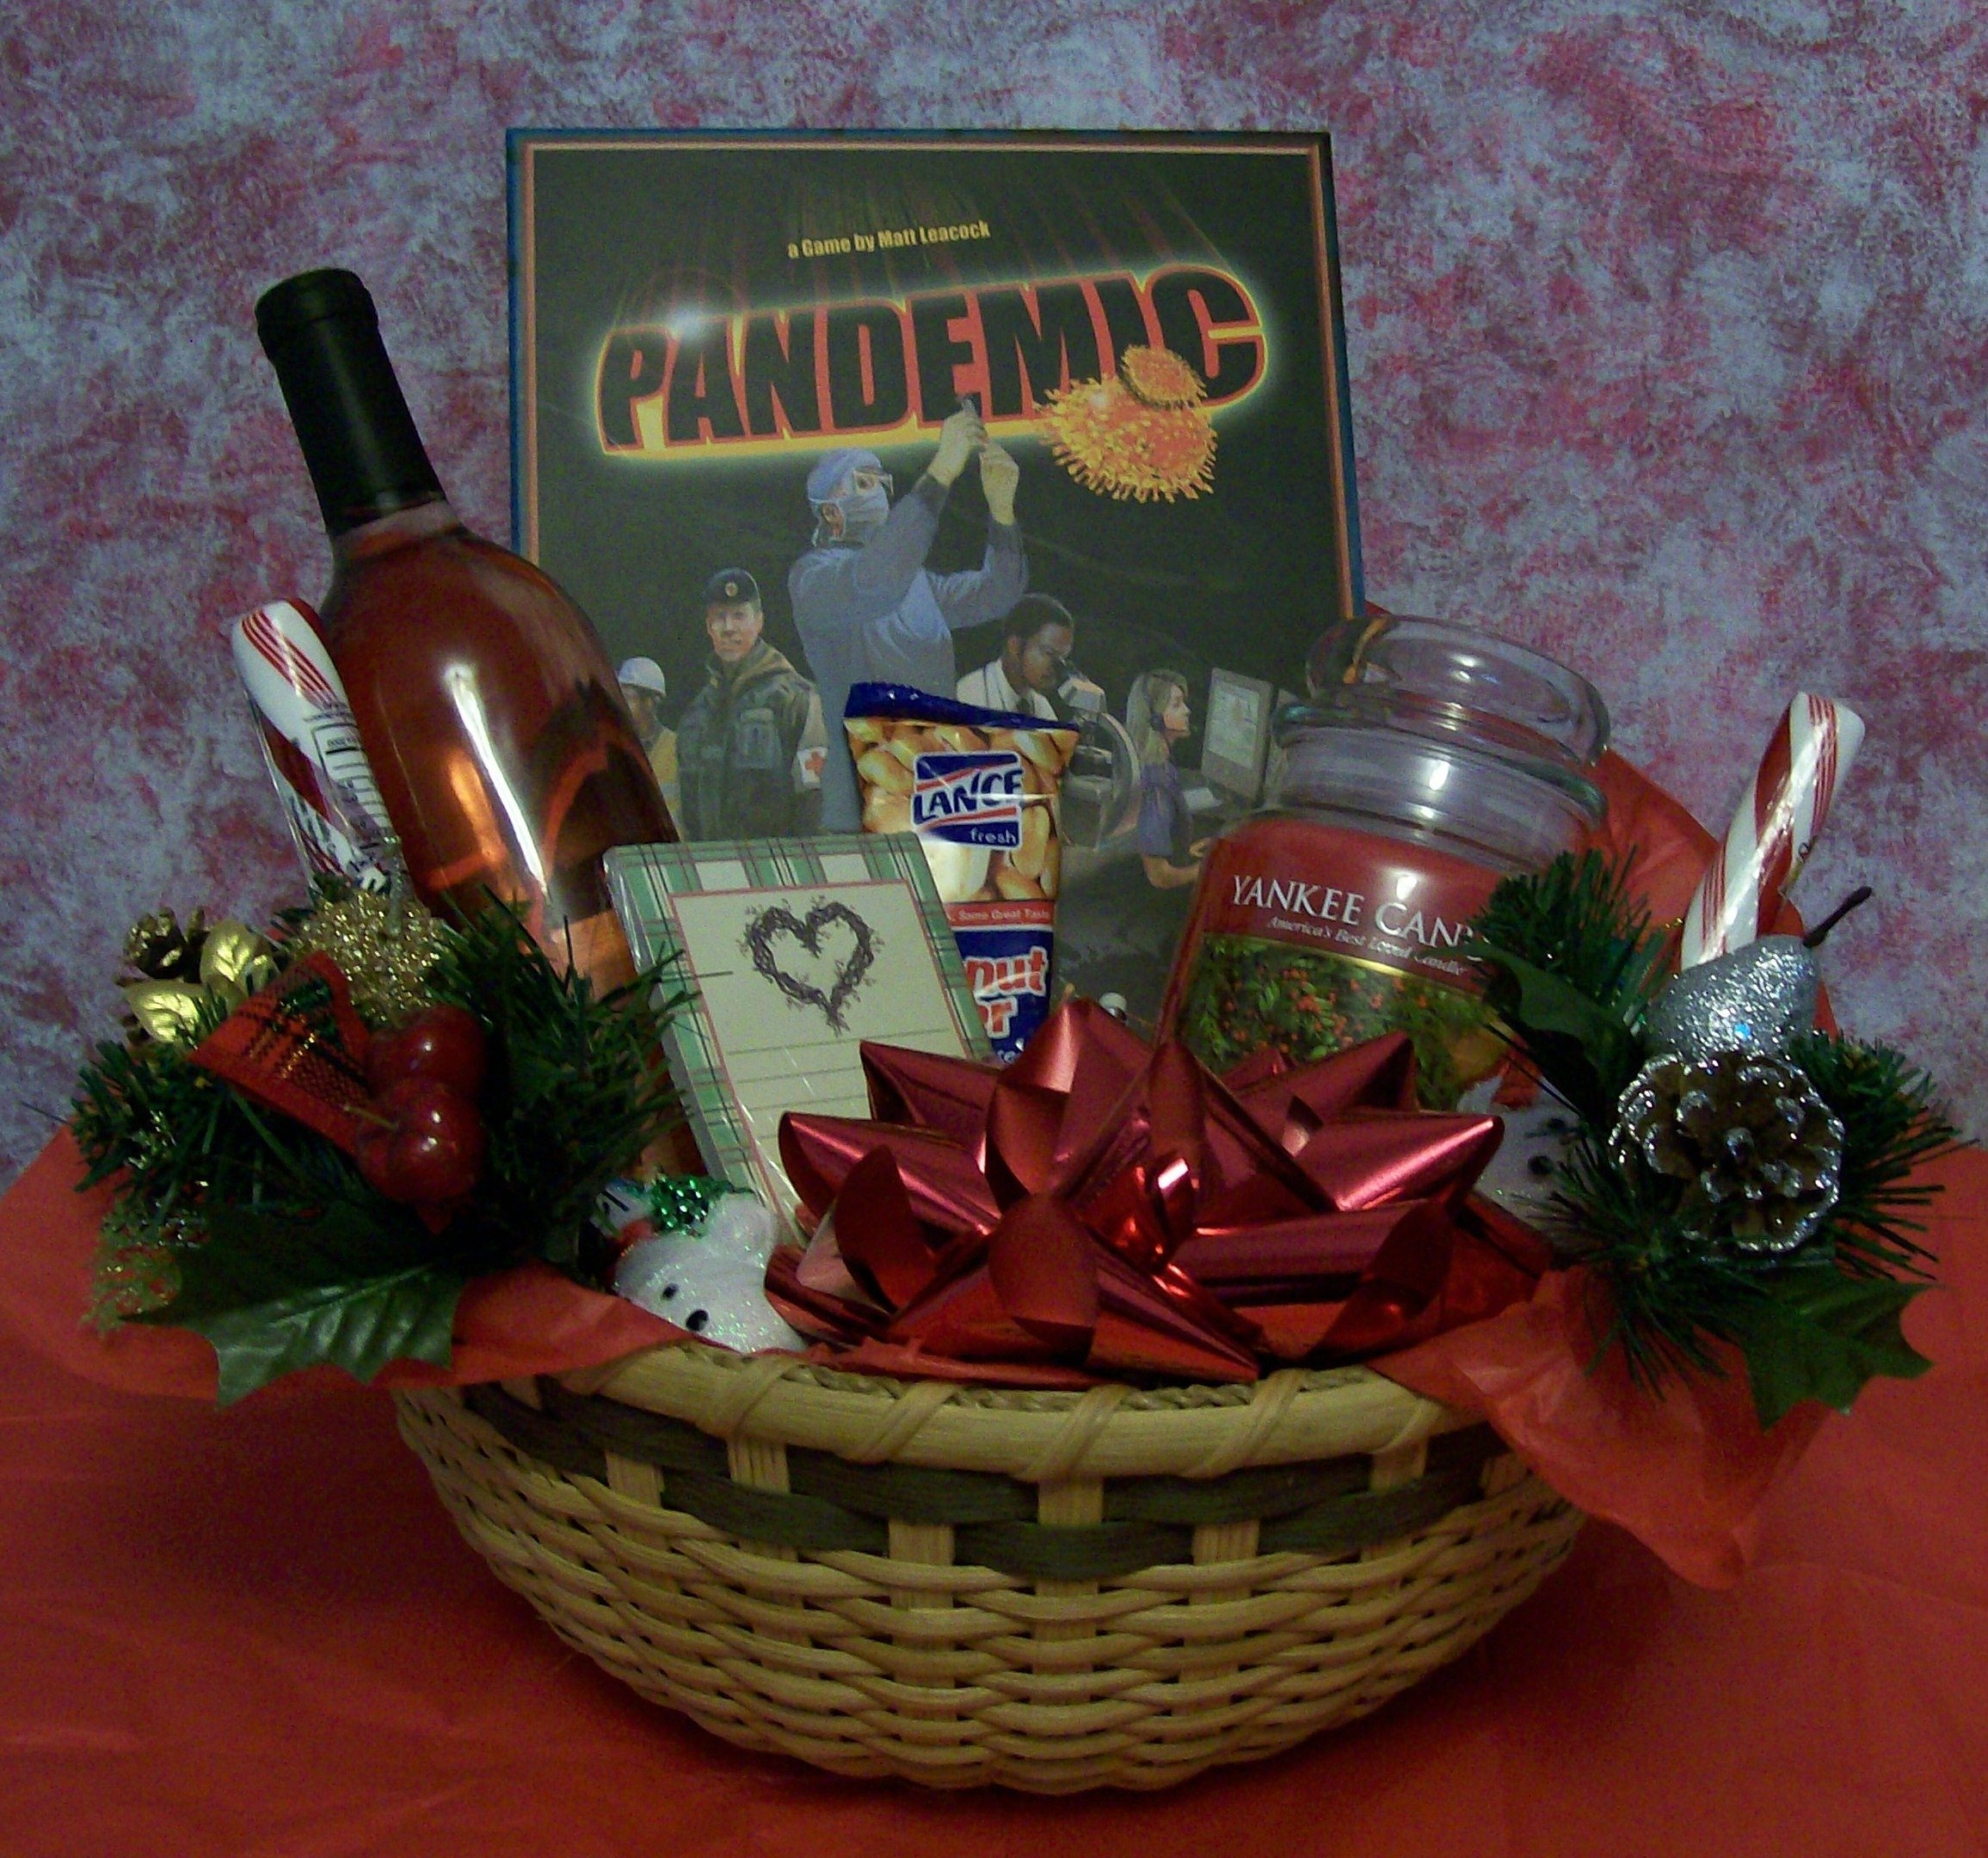 10 Lovable Family Christmas Gift Basket Ideas themed fun and games gift basket ideas all about fun and games 2020